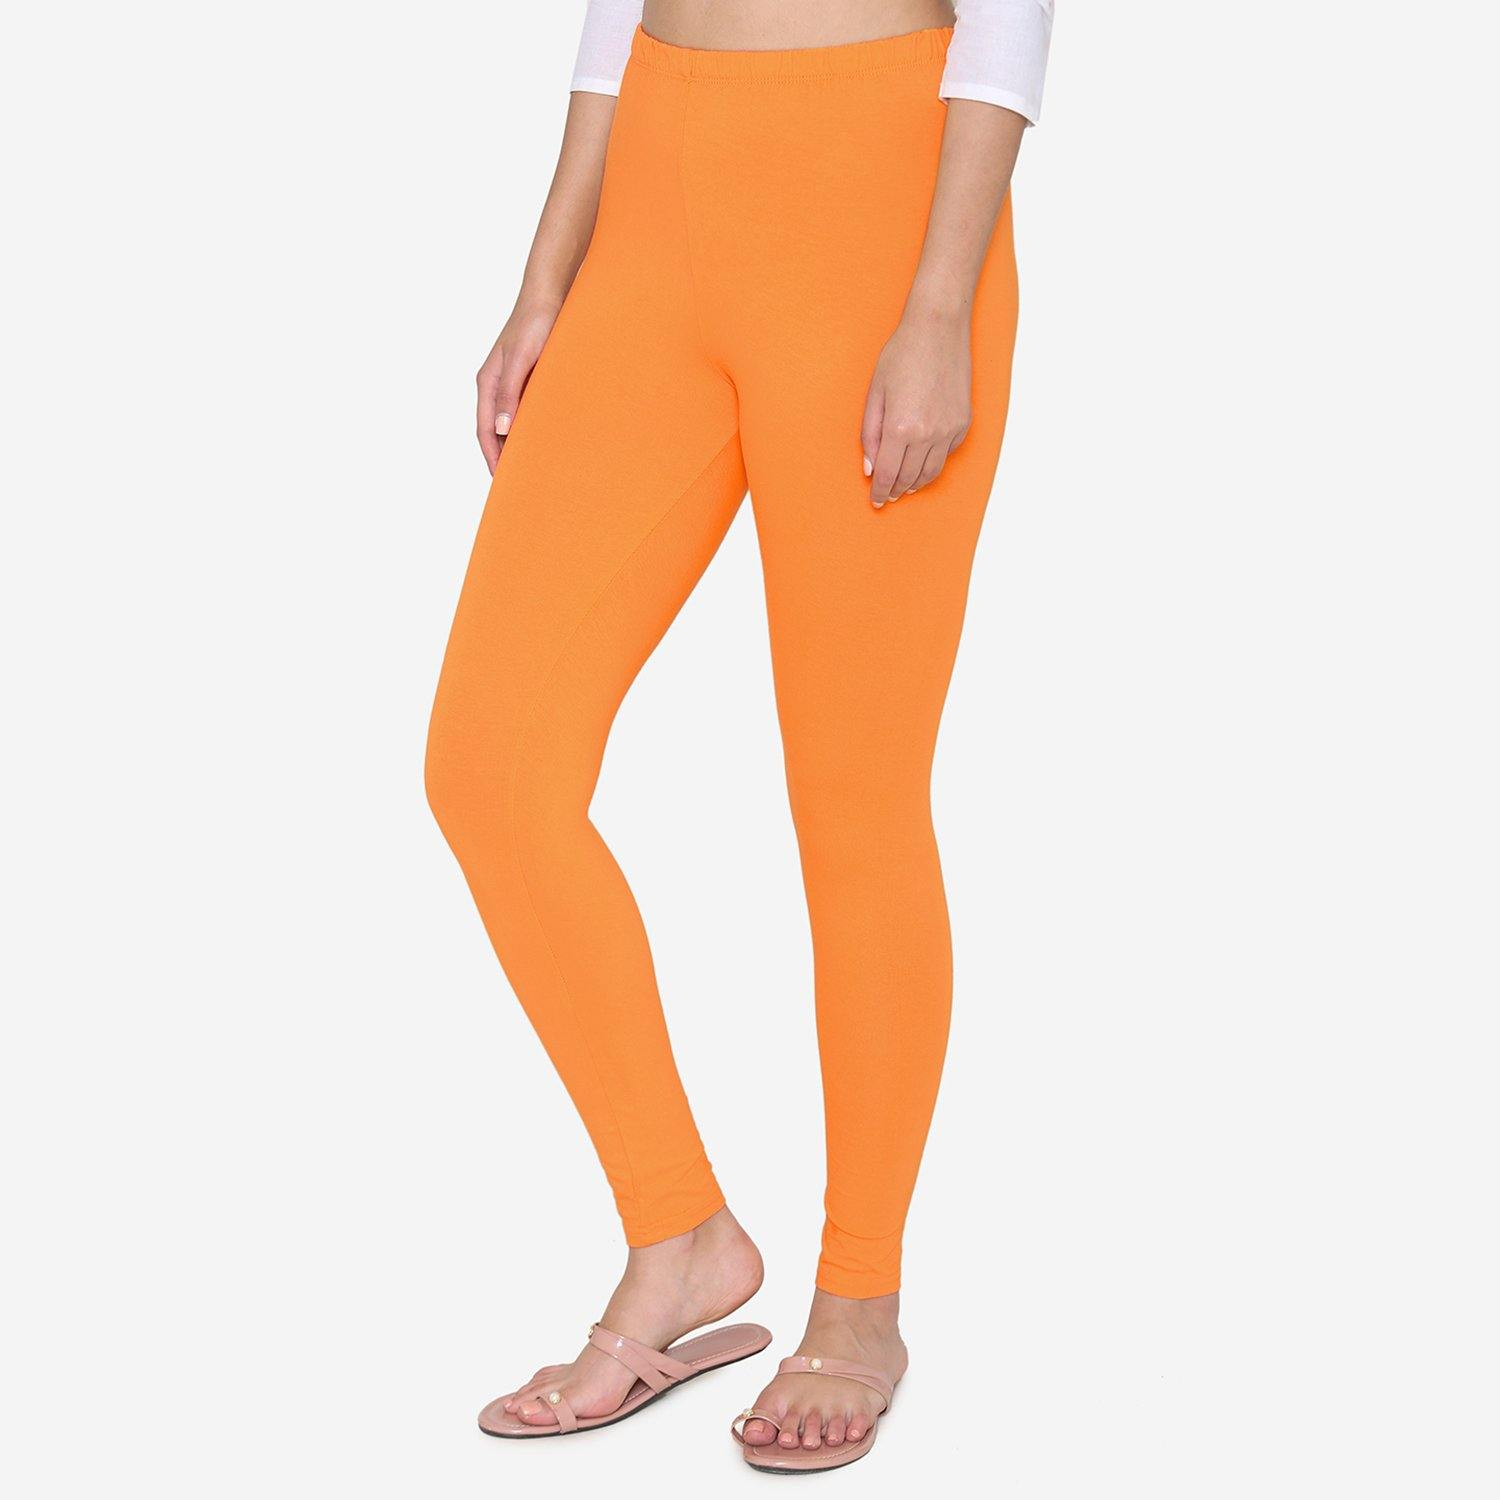 Vami Women's Cotton Stretchable Ankle Leggings -Vibrant Orange